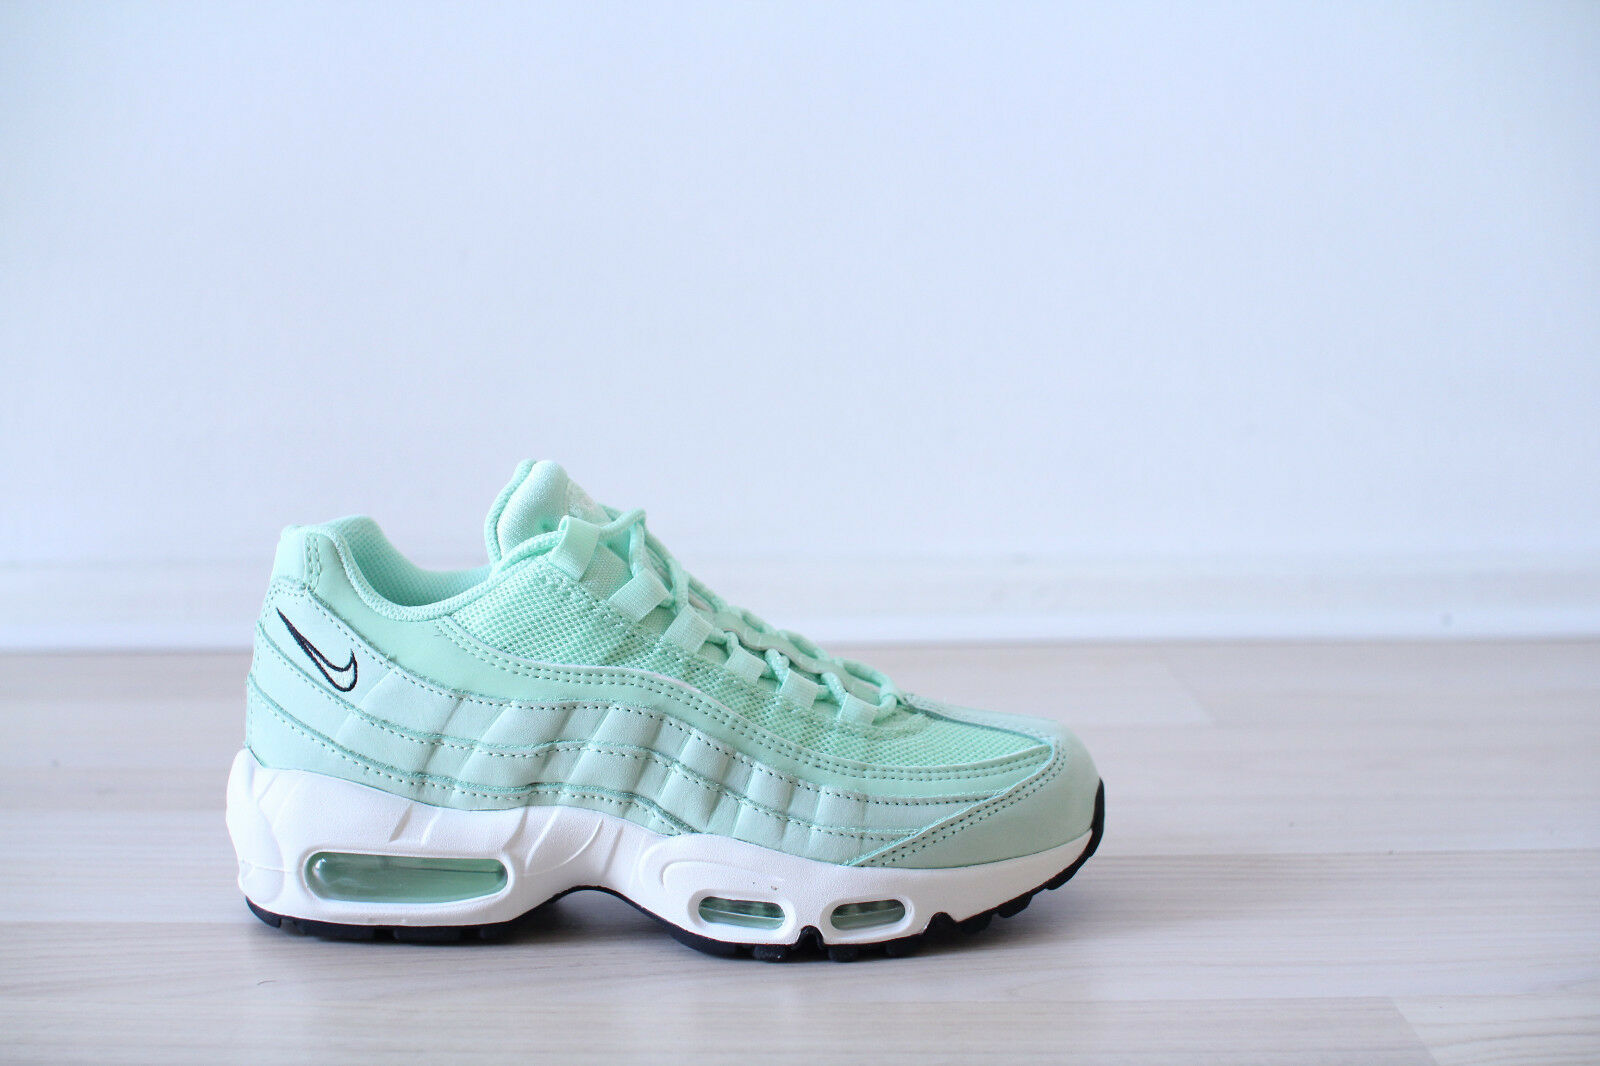 Nike Air Max 95 Wmns Mint verde blanco Talla 36,37,38 NEW & OVP